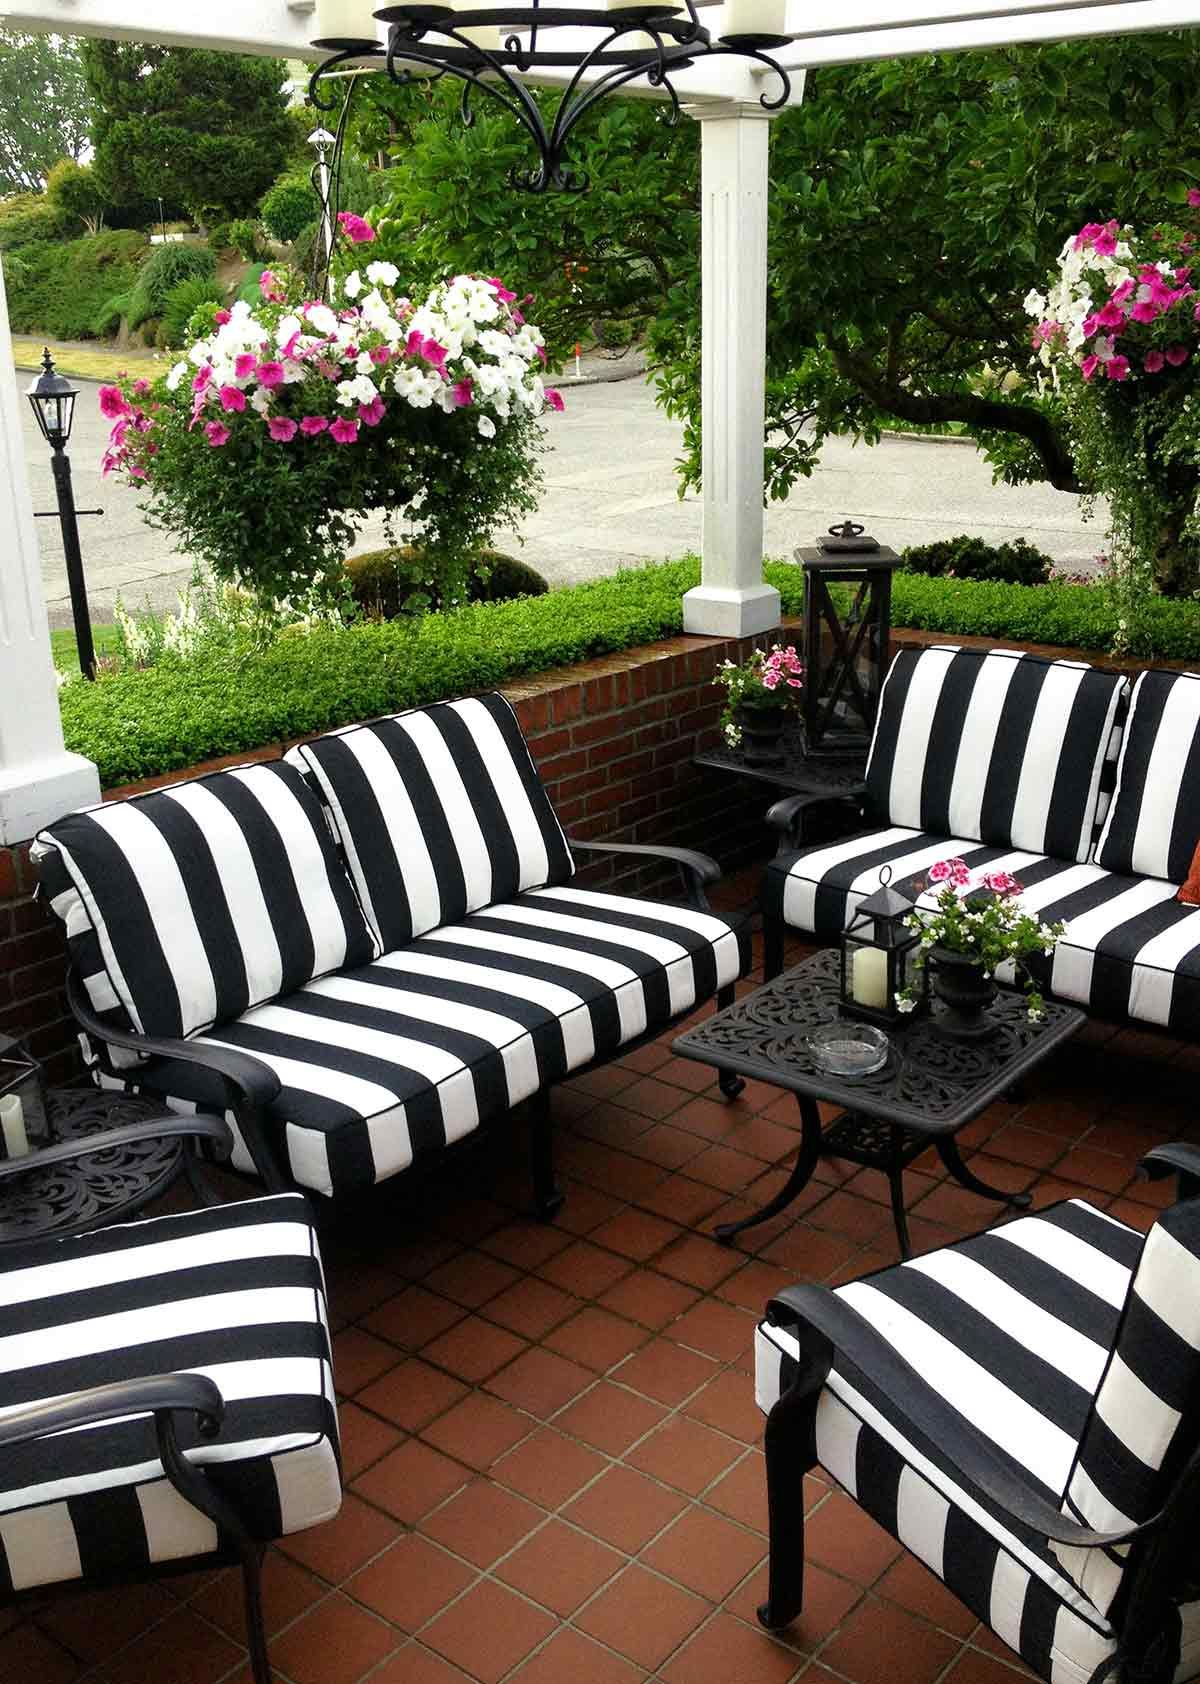 How To Add Comfort Your Outdoor E With Deep Seating